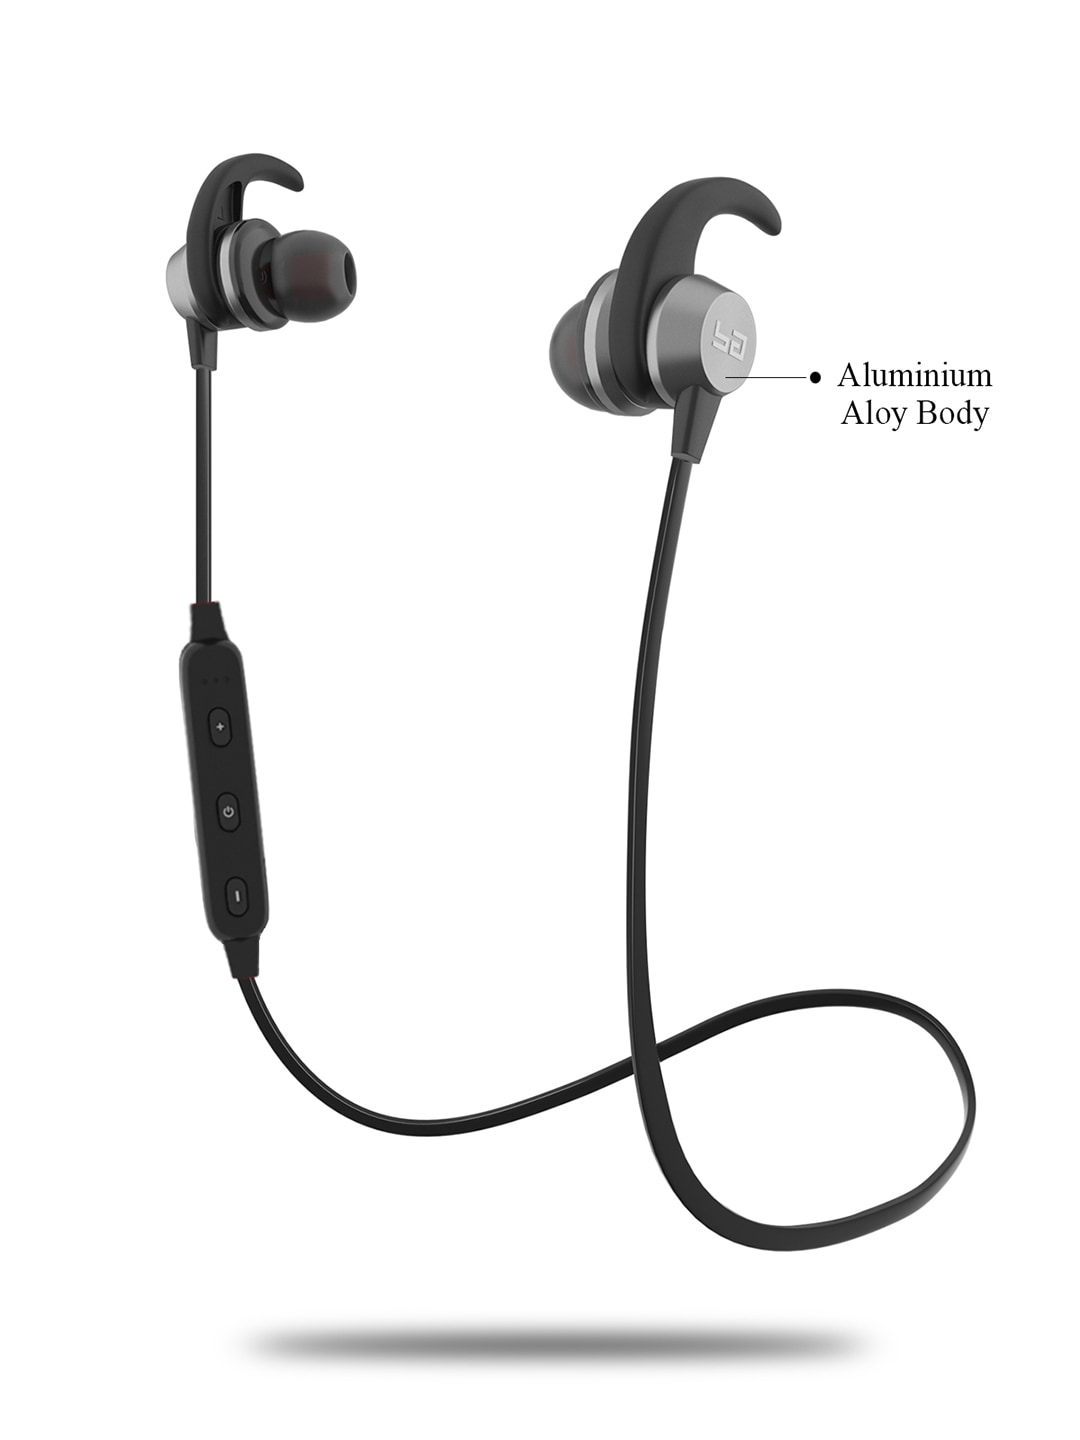 Buy Boult Grey Space Wireless Bluetooth Earphones At Best Price in India